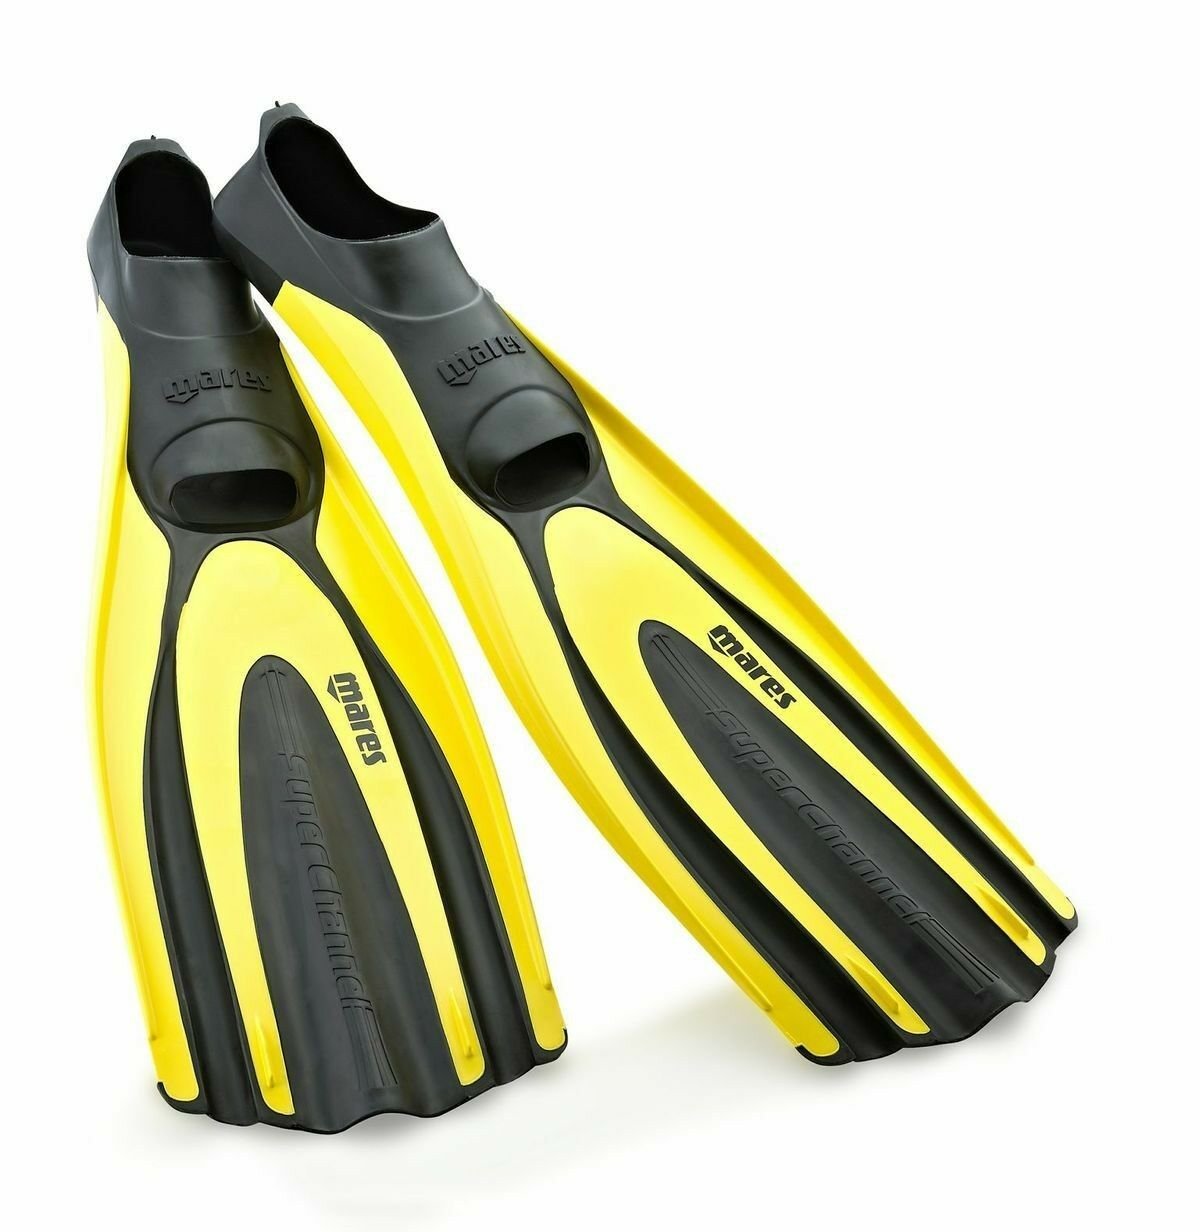 Mares Avanti Super Channel Full Foot Fins, Mares Comfort Scuba Diving Fin - NEW